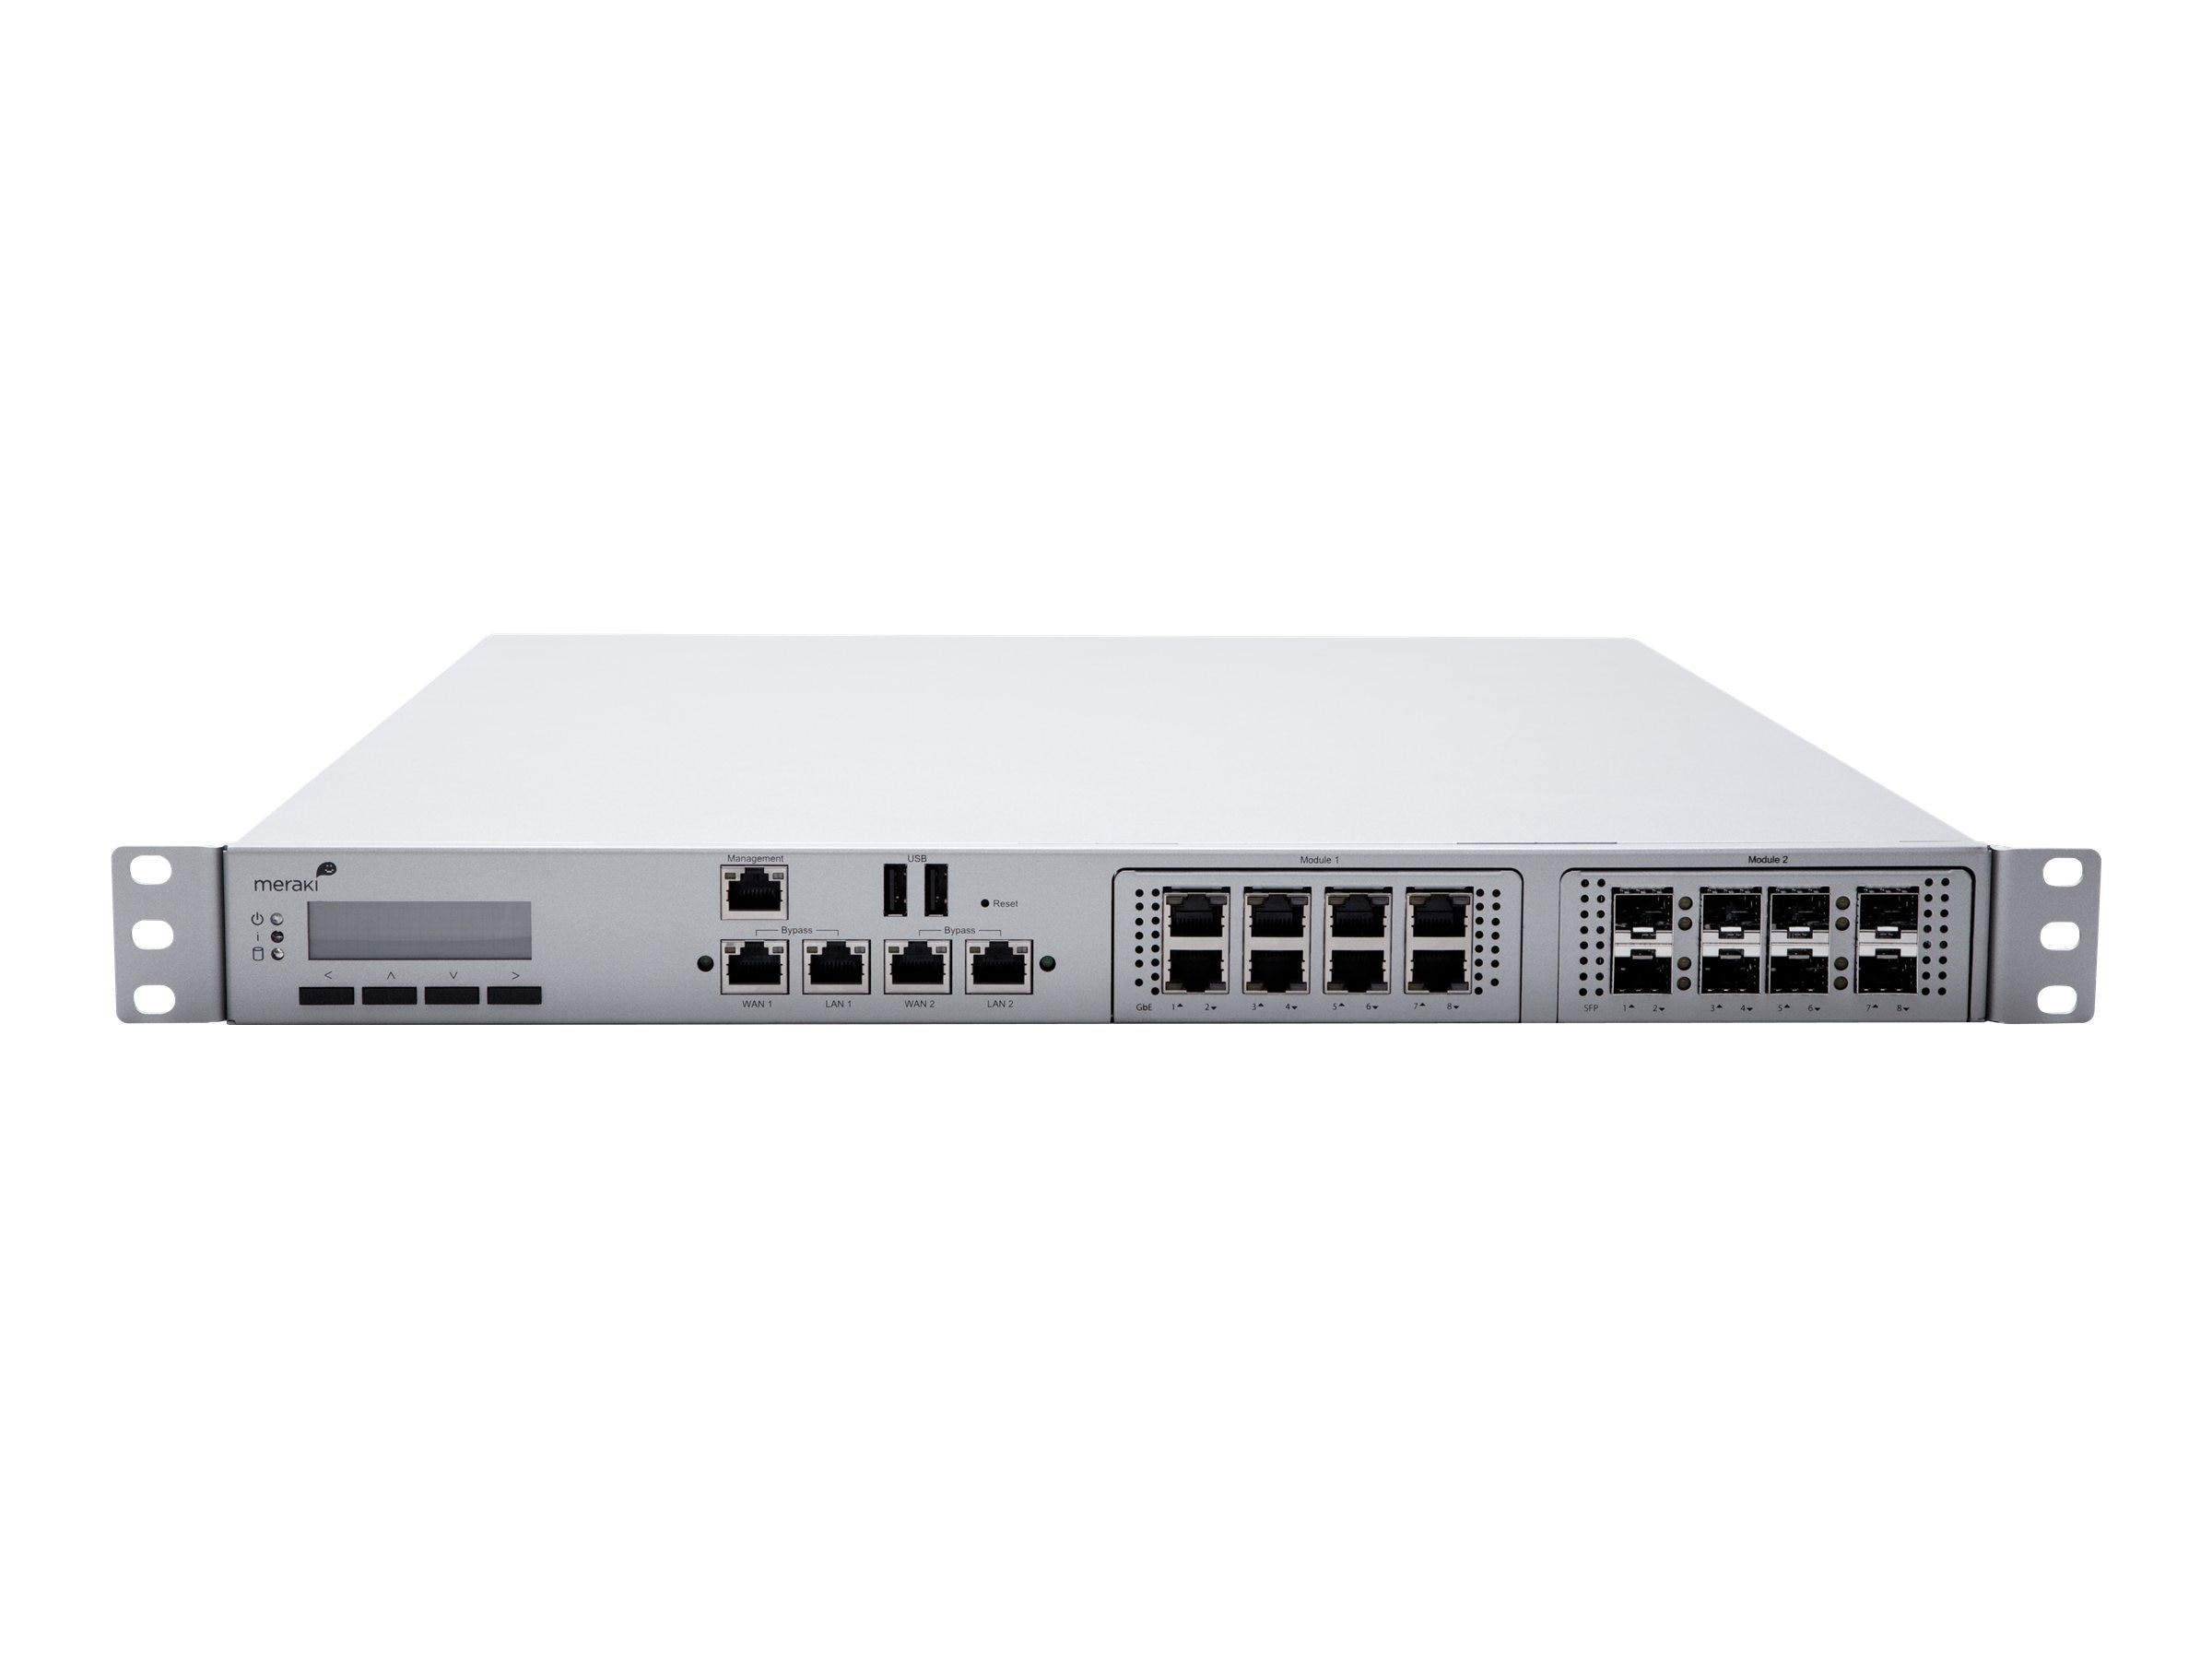 Cisco Meraki MX400 Cloud-Managed Security Appliance